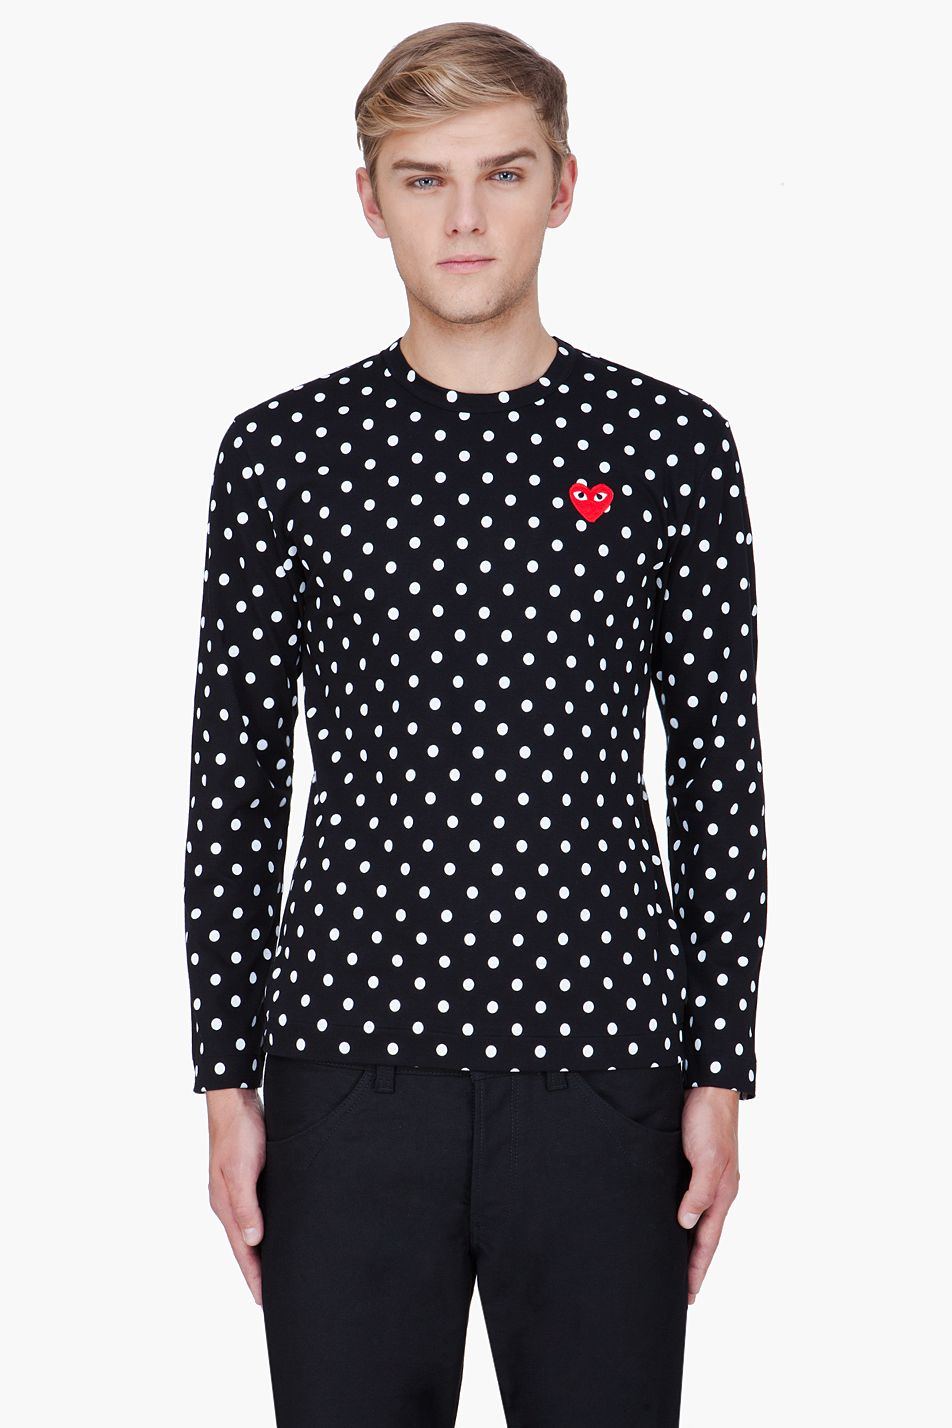 Men's polka dot shirts may be hard to find but they do exist. A vintage store is a great place to start your quest. If you are lucky, they may be at your favorite department store or even in a young men's store.